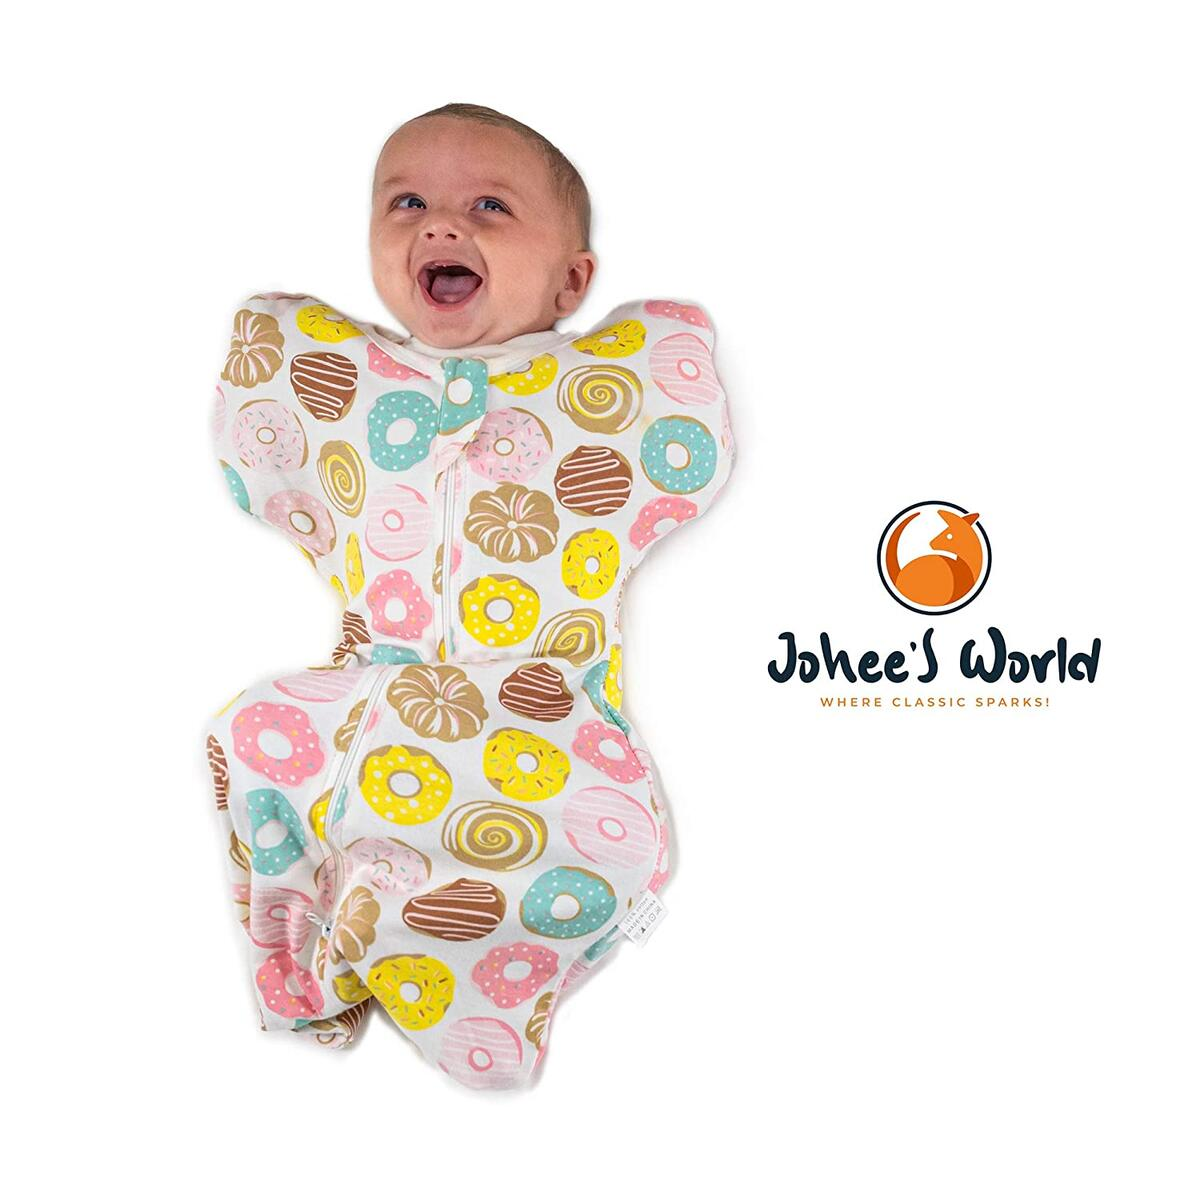 Swaddle (Pink, M) 5pc. Baby Swaddle Blanket Set with Baby Hand Mittens, Hat, Pacifier - Self-Soothing Newborn Infant Snug Fit Sleep Sack Wrap Calms Startle Reflex, Improves Sleep (0-3 Months)